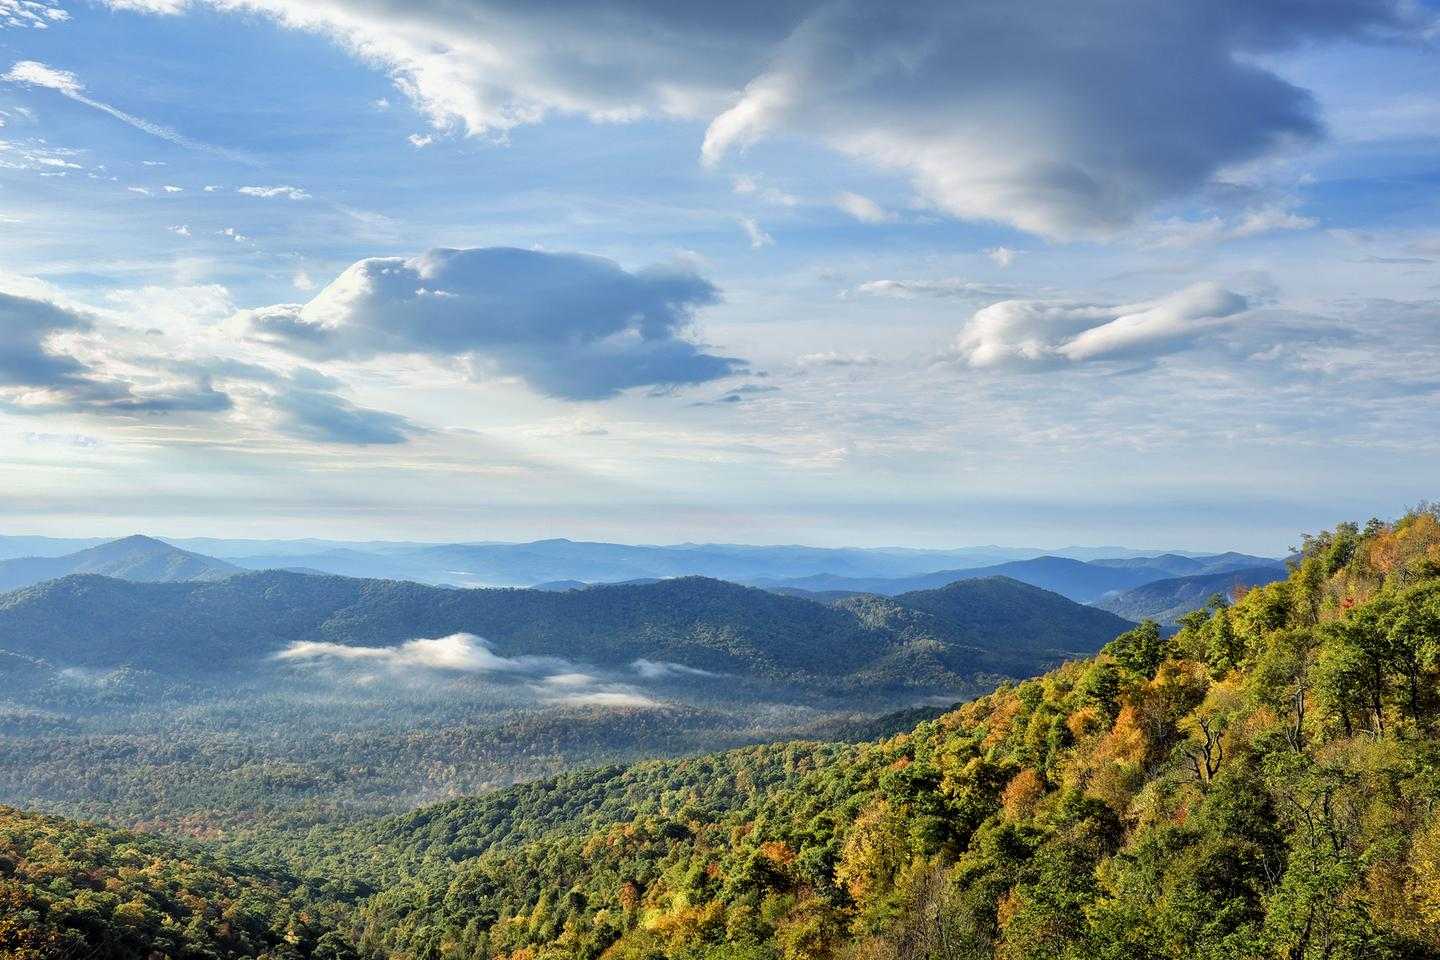 Mountain vistaBeautiful mountain in North Carolina draw visitors from around the world to the Blue Ridge Parkway